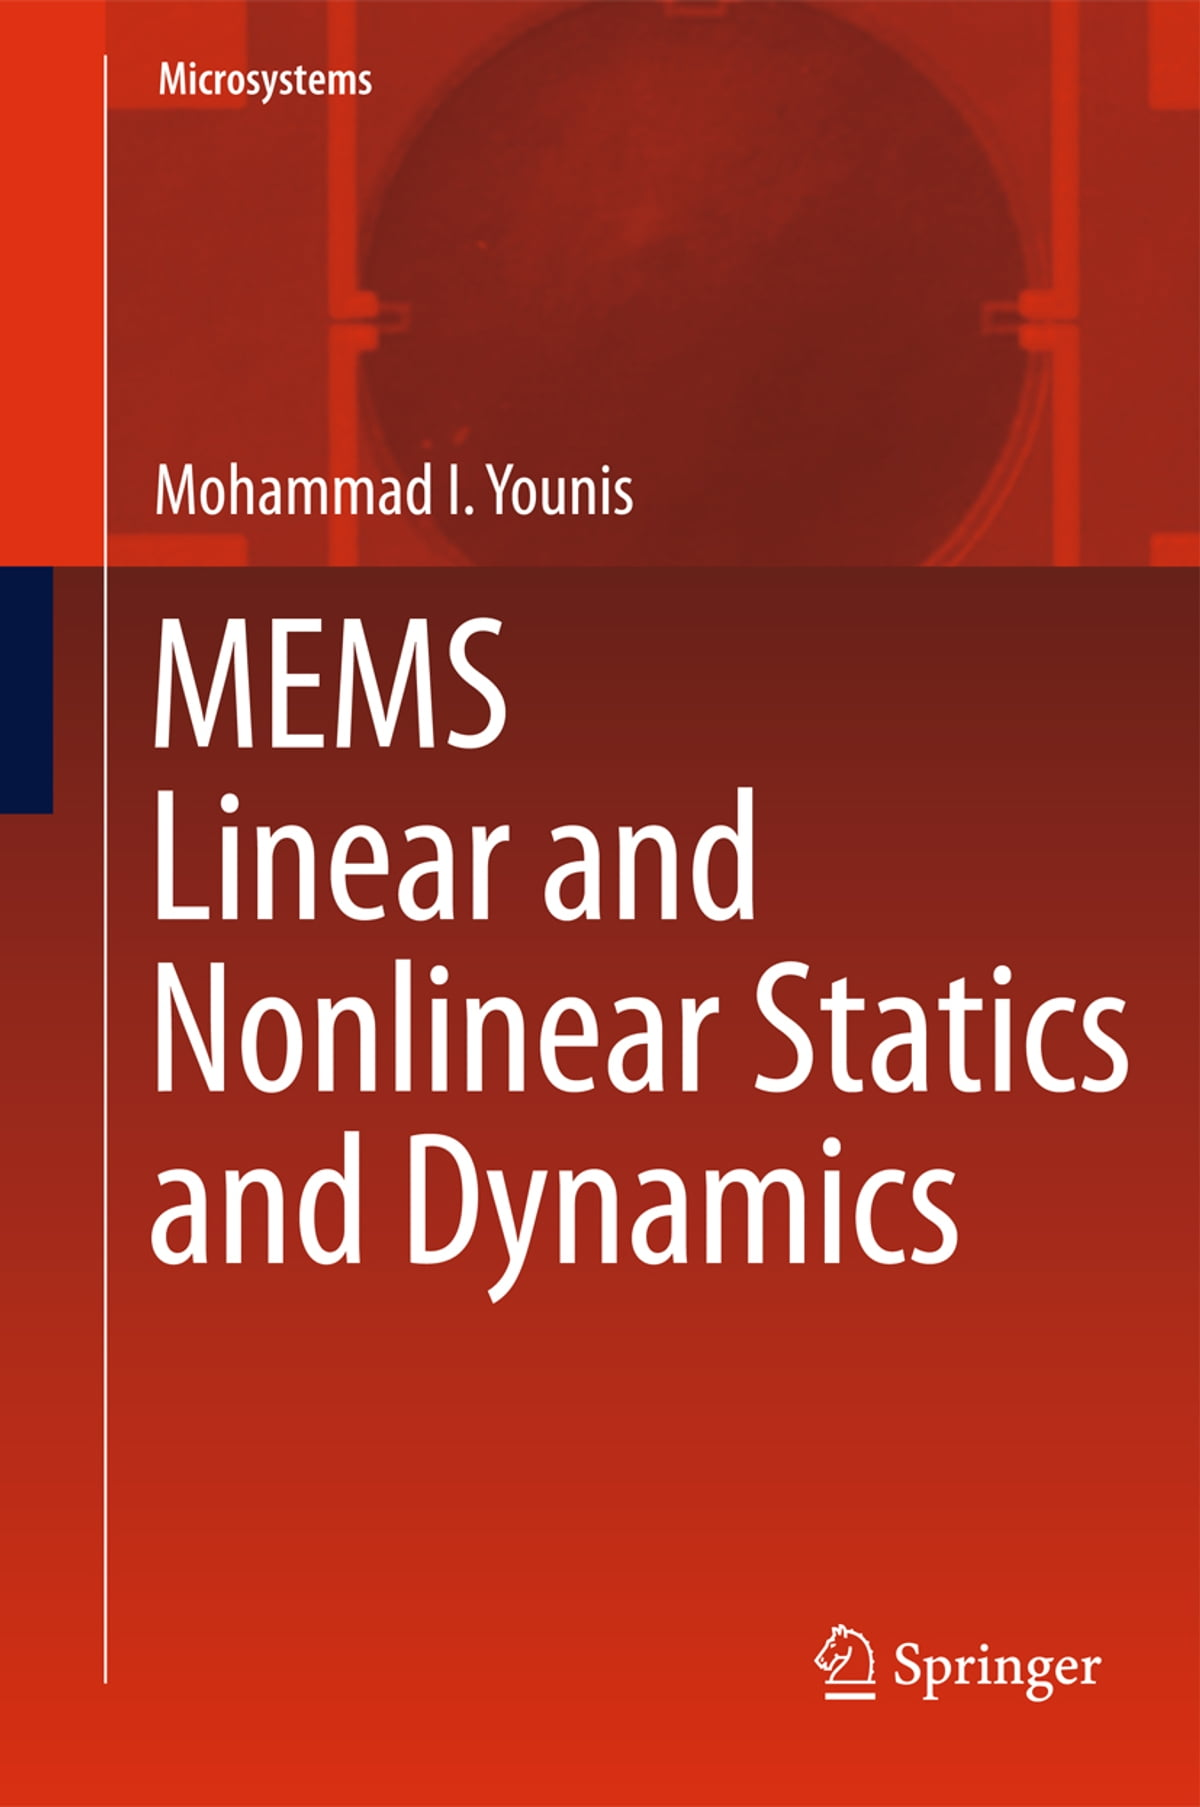 linear dynamic systems and signals ebook onnline